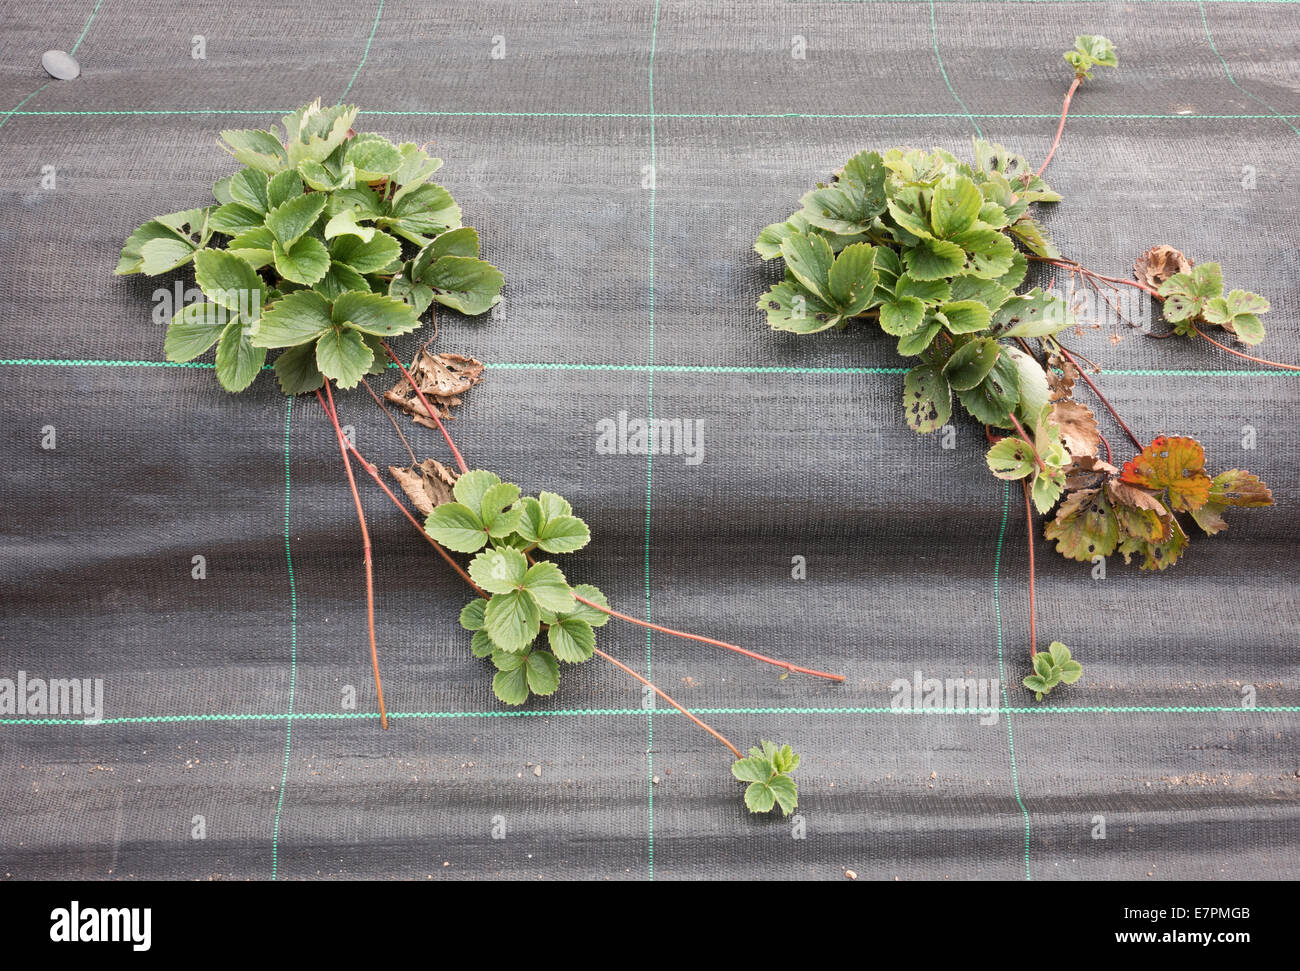 Kitchen Garden Plants Young Strawberry Plants Growing Through A Permeable Membrane To